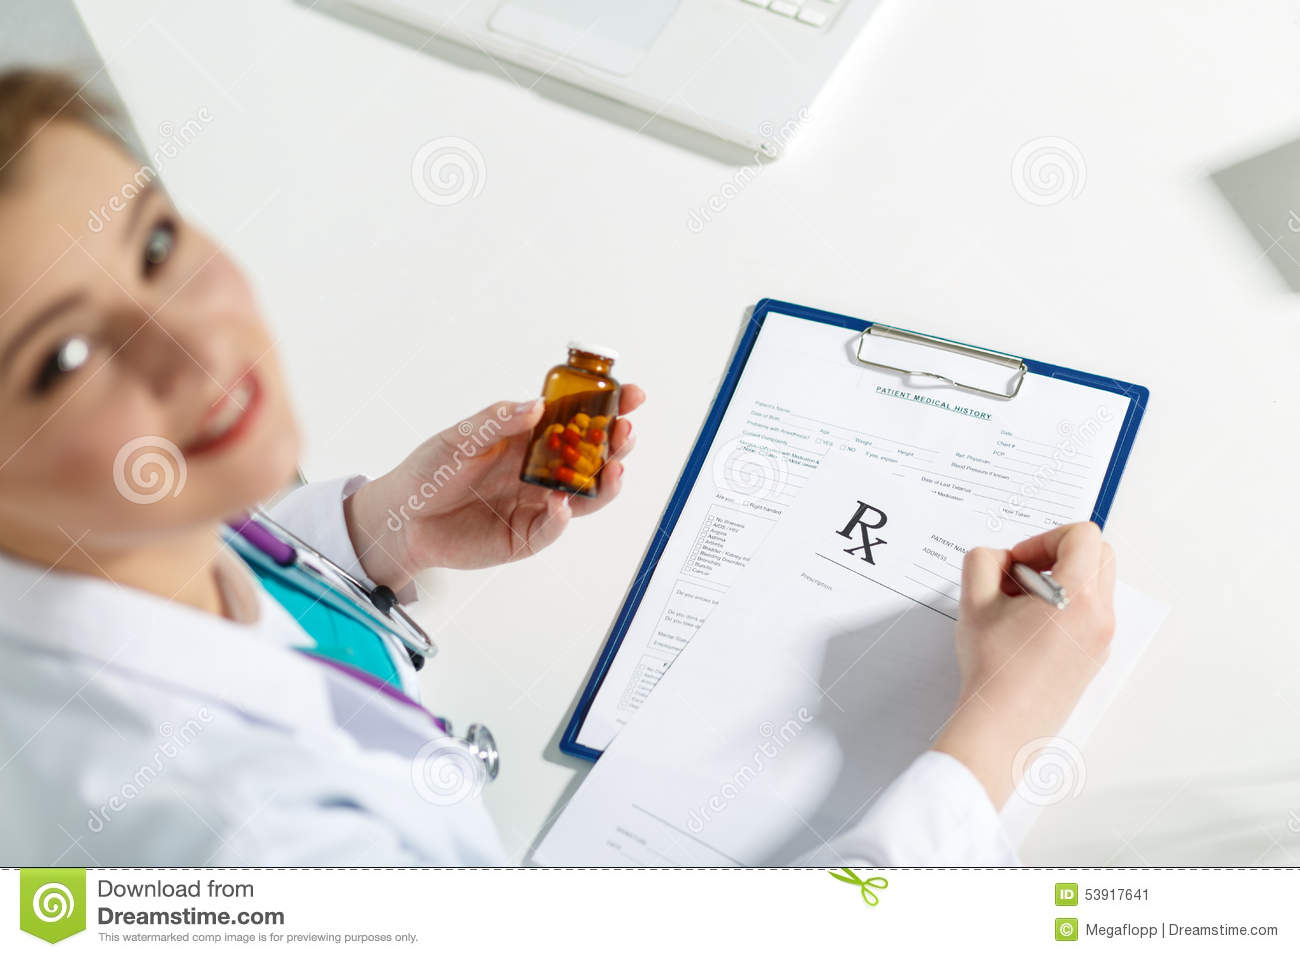 Medical Prescription List - - creativechameleon.co.uk